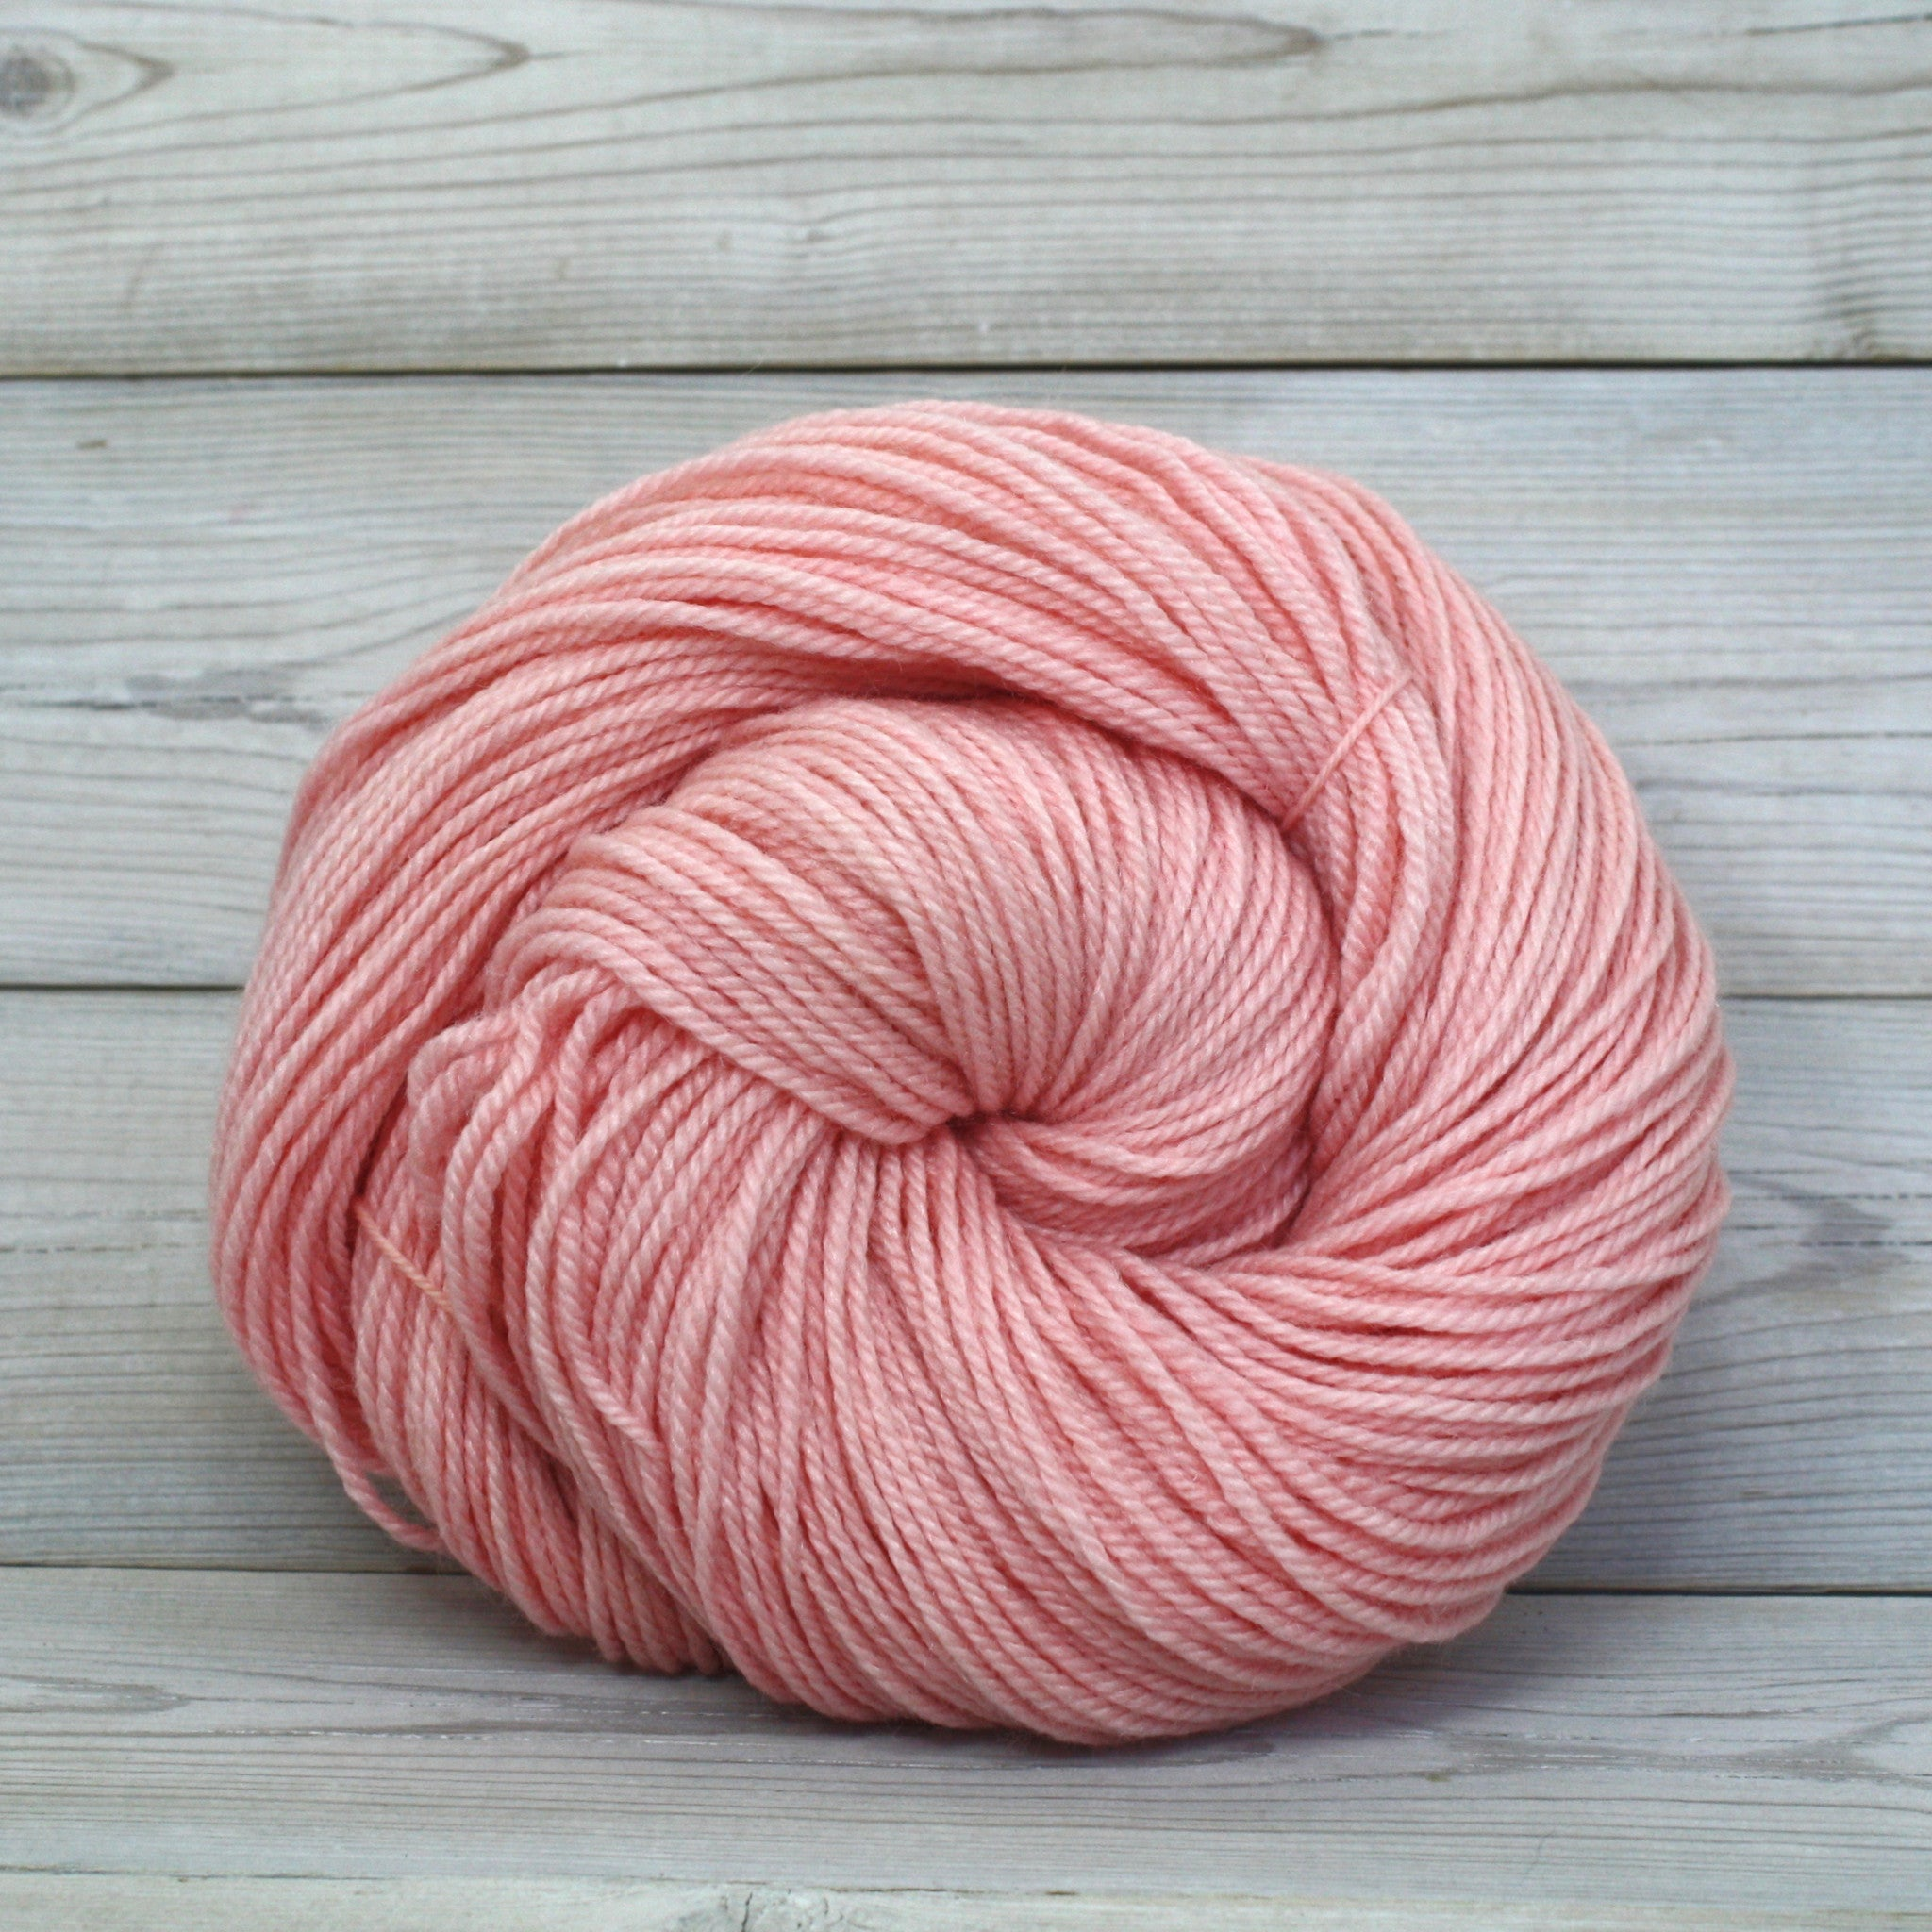 Luna Grey Fiber Arts Zeta Yarn | Colorway: Ballet Slipper